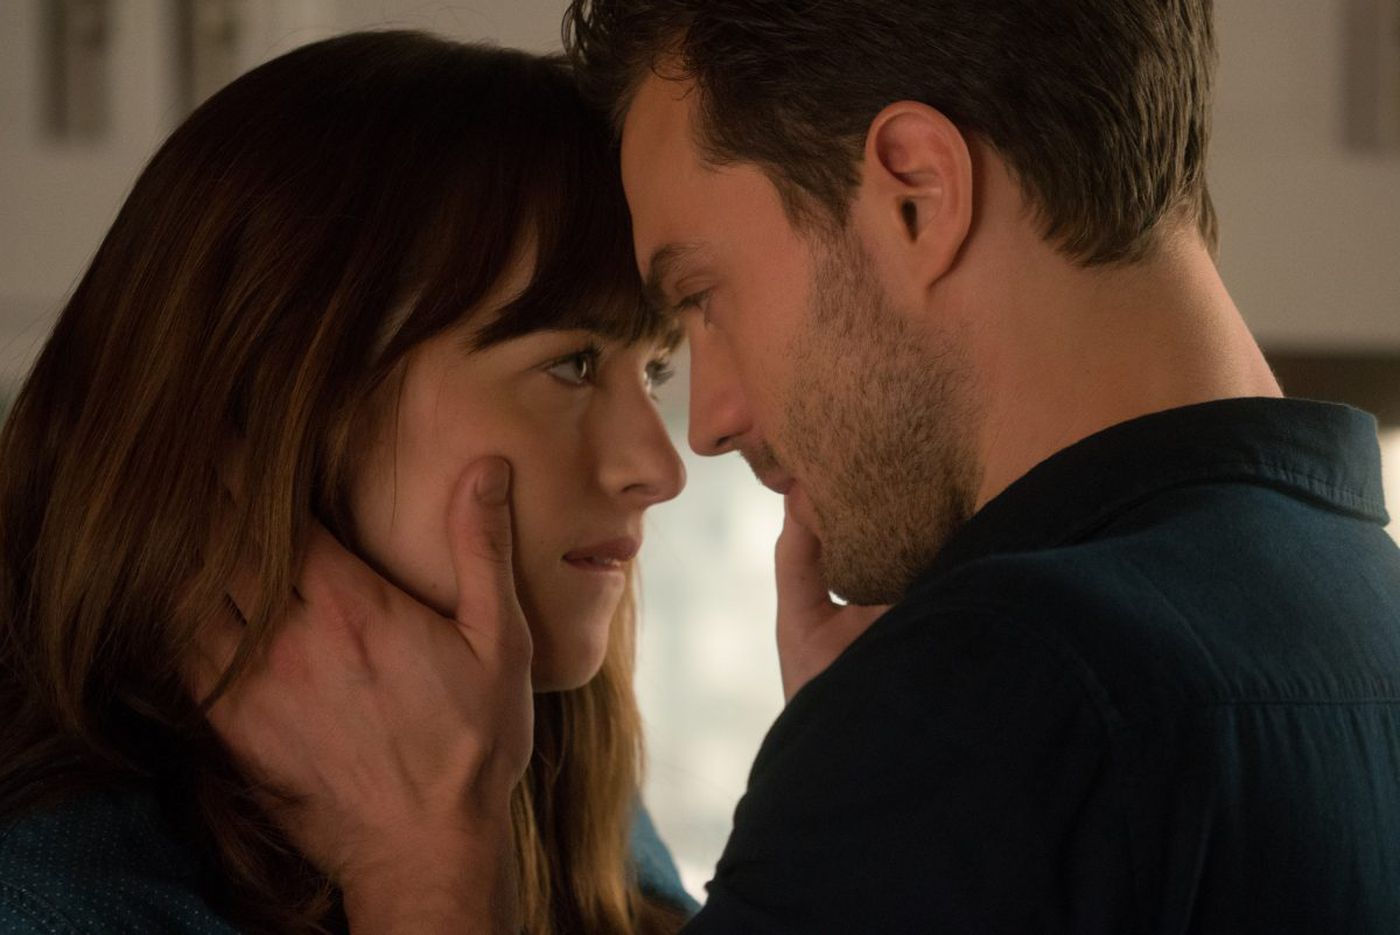 'Fifty Shades Freed': The painful conclusion to the S&M romantic saga